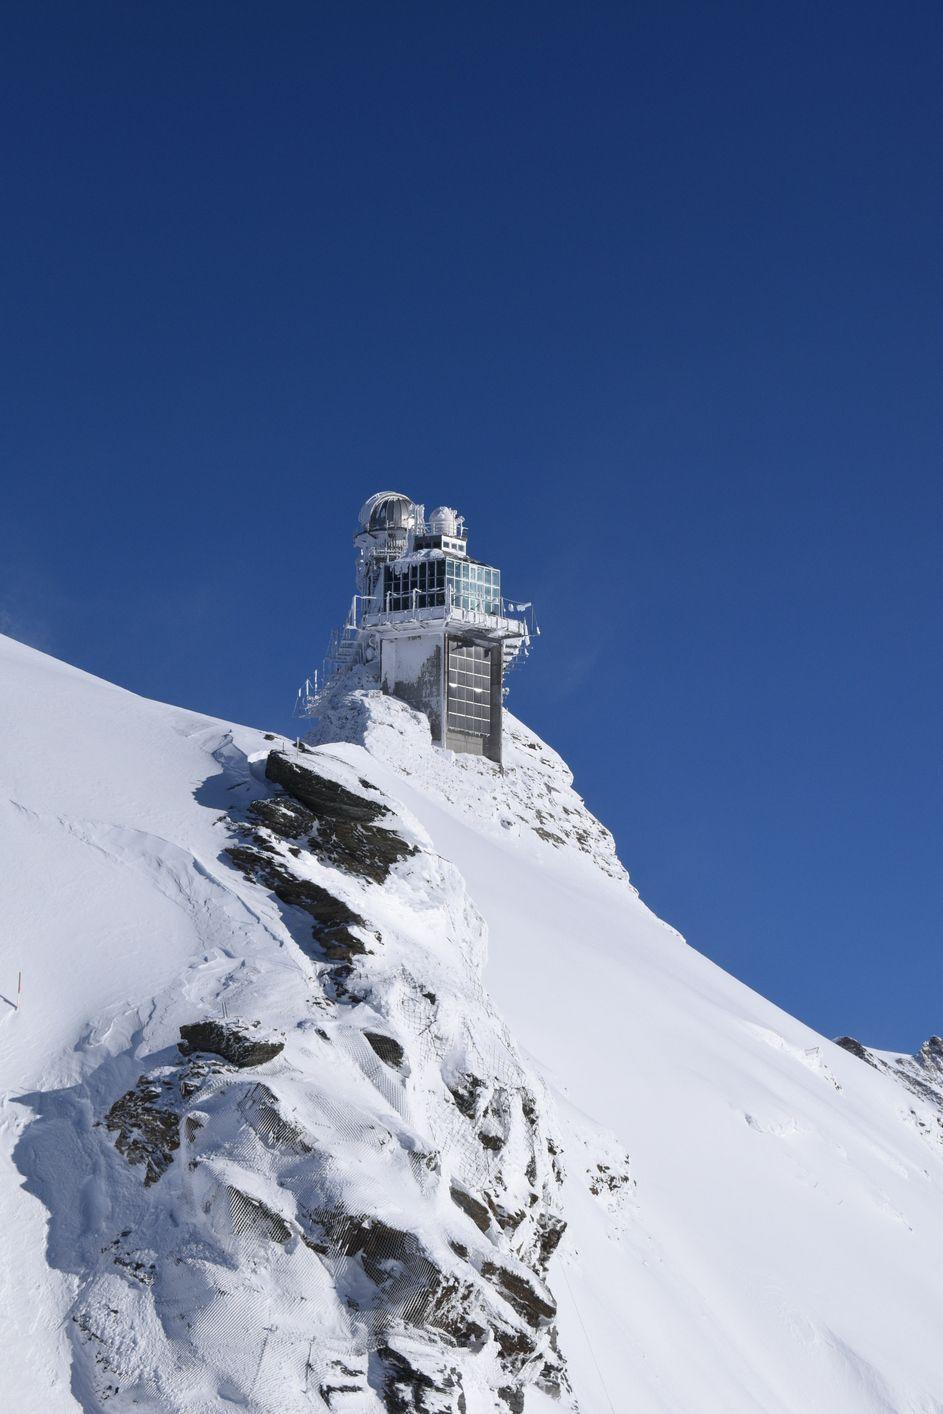 <p>Visitors to the Sphinx Observatory in Switzerland, which has surveyed the Alps since 1937, can take in views of nearby mountain-tops from the public viewing deck, but Anderson may have found in hard to capture his signature panoramic shots in the harsher weather of the observatory's mountains. </p>